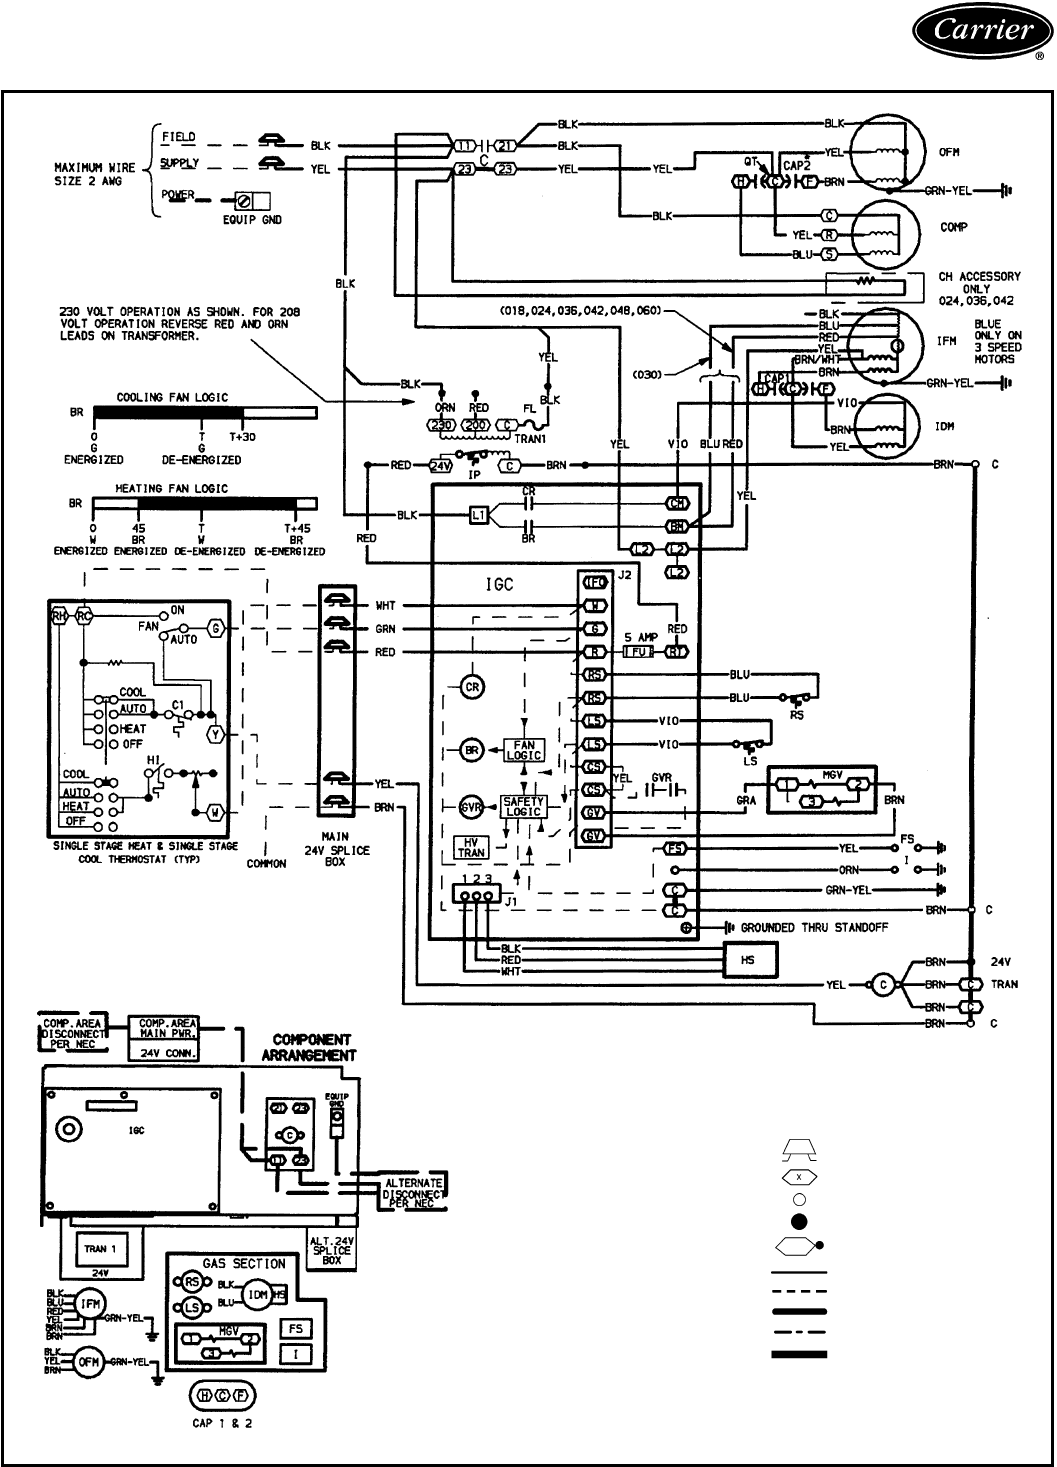 595e8aca 1cba 4ce6 ac3f ef414be0010d bg15 page 21 of carrier gas heater 48ss user guide manualsonline com Millivolt Gas Valve Troubleshooting at bayanpartner.co